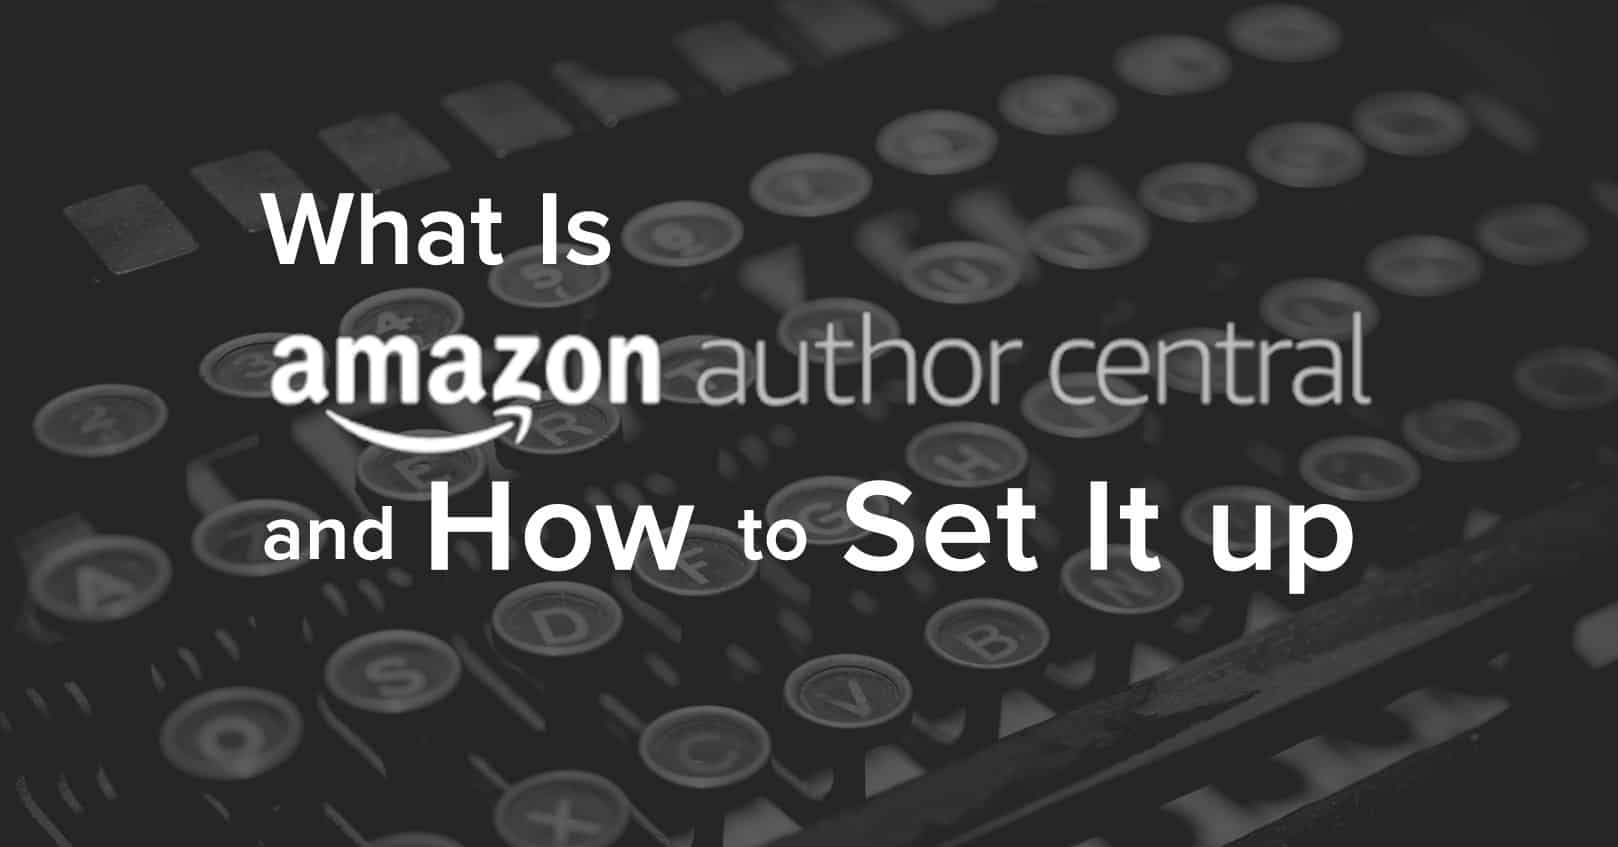 set up amazon author central and amazon author pages